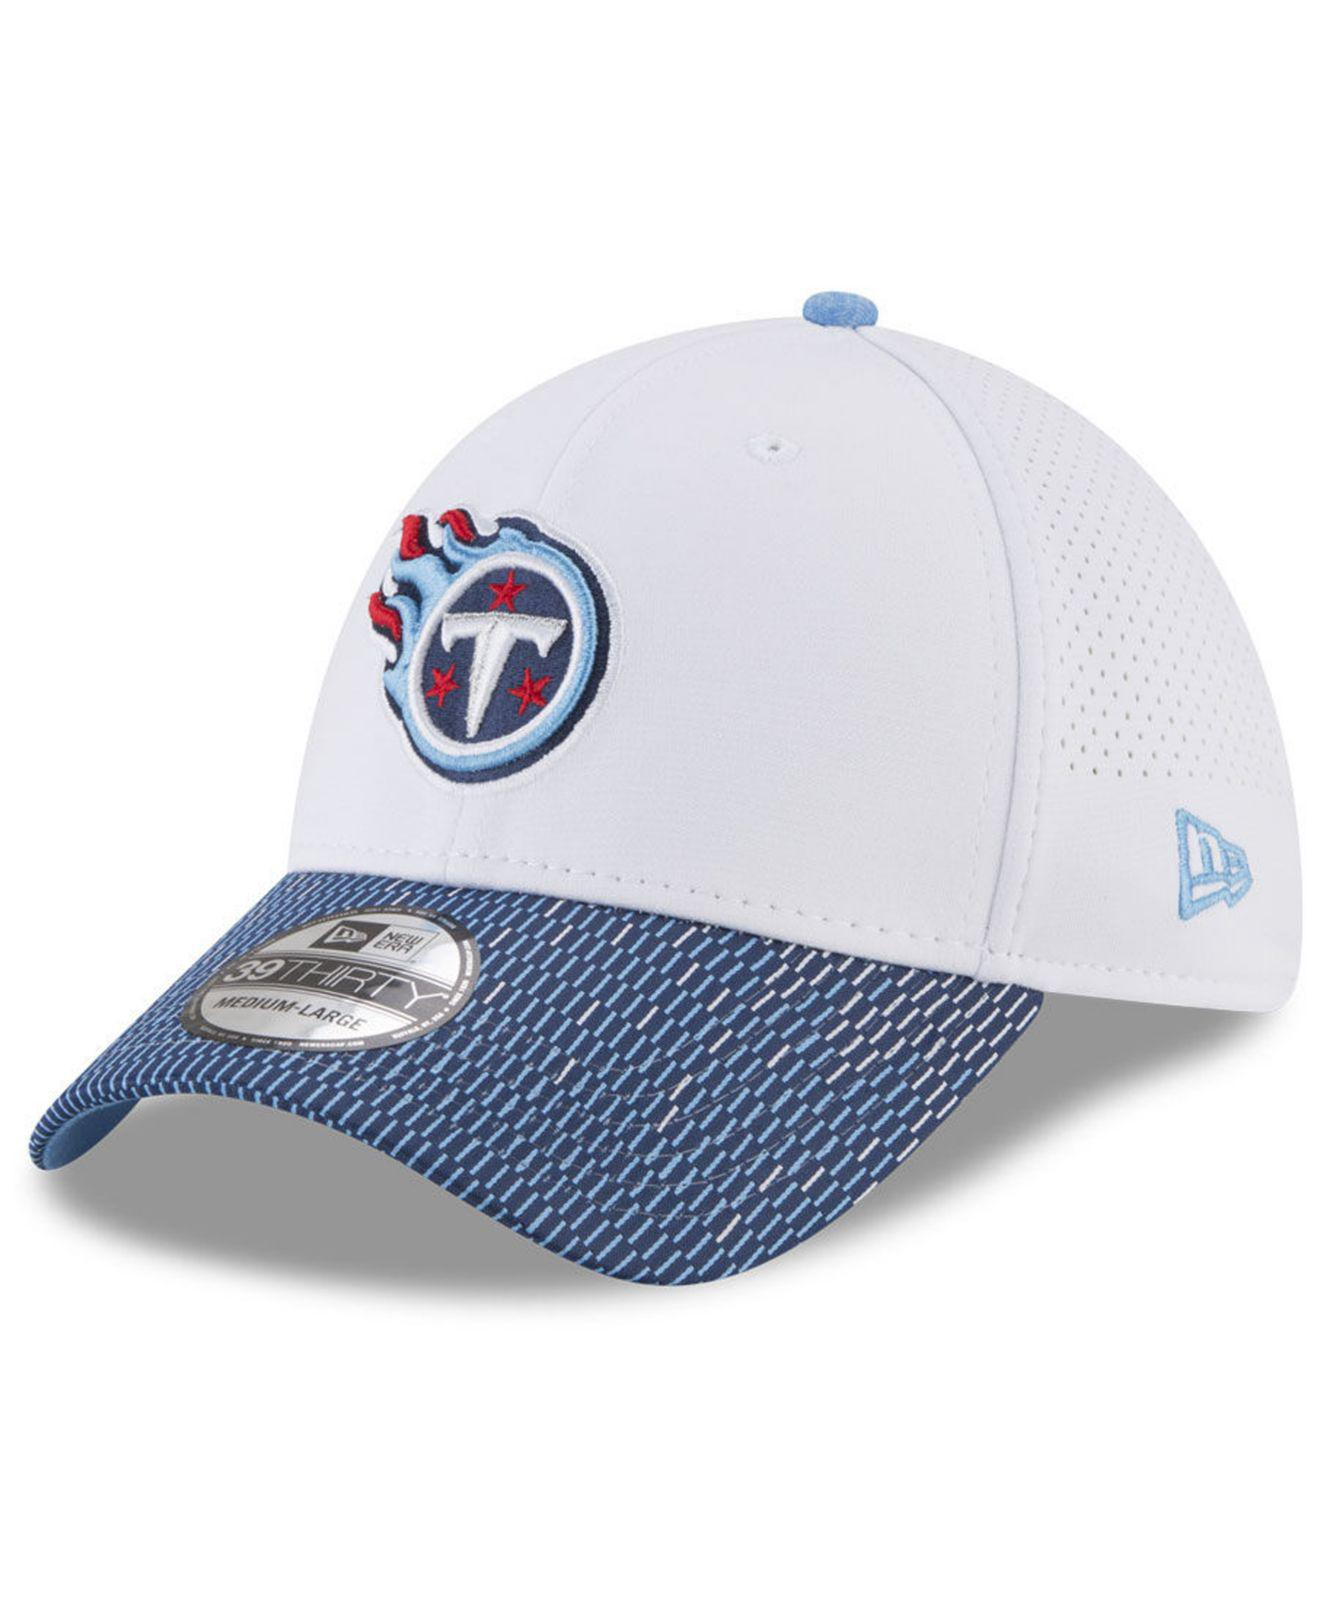 official photos 935d0 e0766 greece seattle seahawks new era nfl team alternate logo neo 39thirty cap  5e04a 4211a  new zealand ktz. mens blue tennessee titans equalizer 39thirty  cap ...